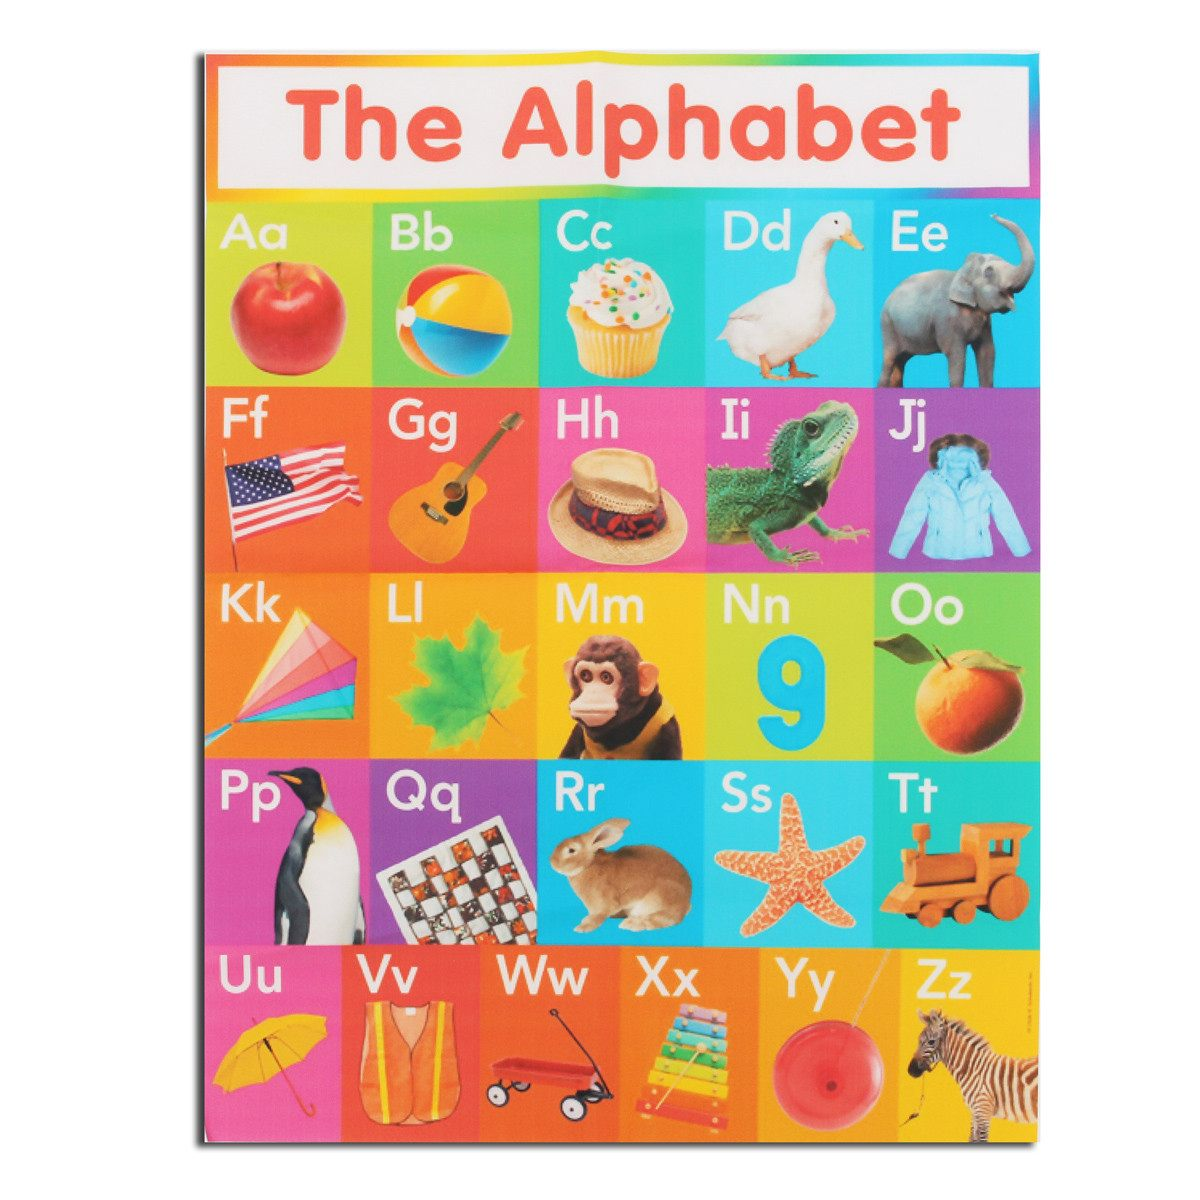 Light Canvas Painting Animal Poster Alphabet Early-Learning Education Baby Kids Home-Decor